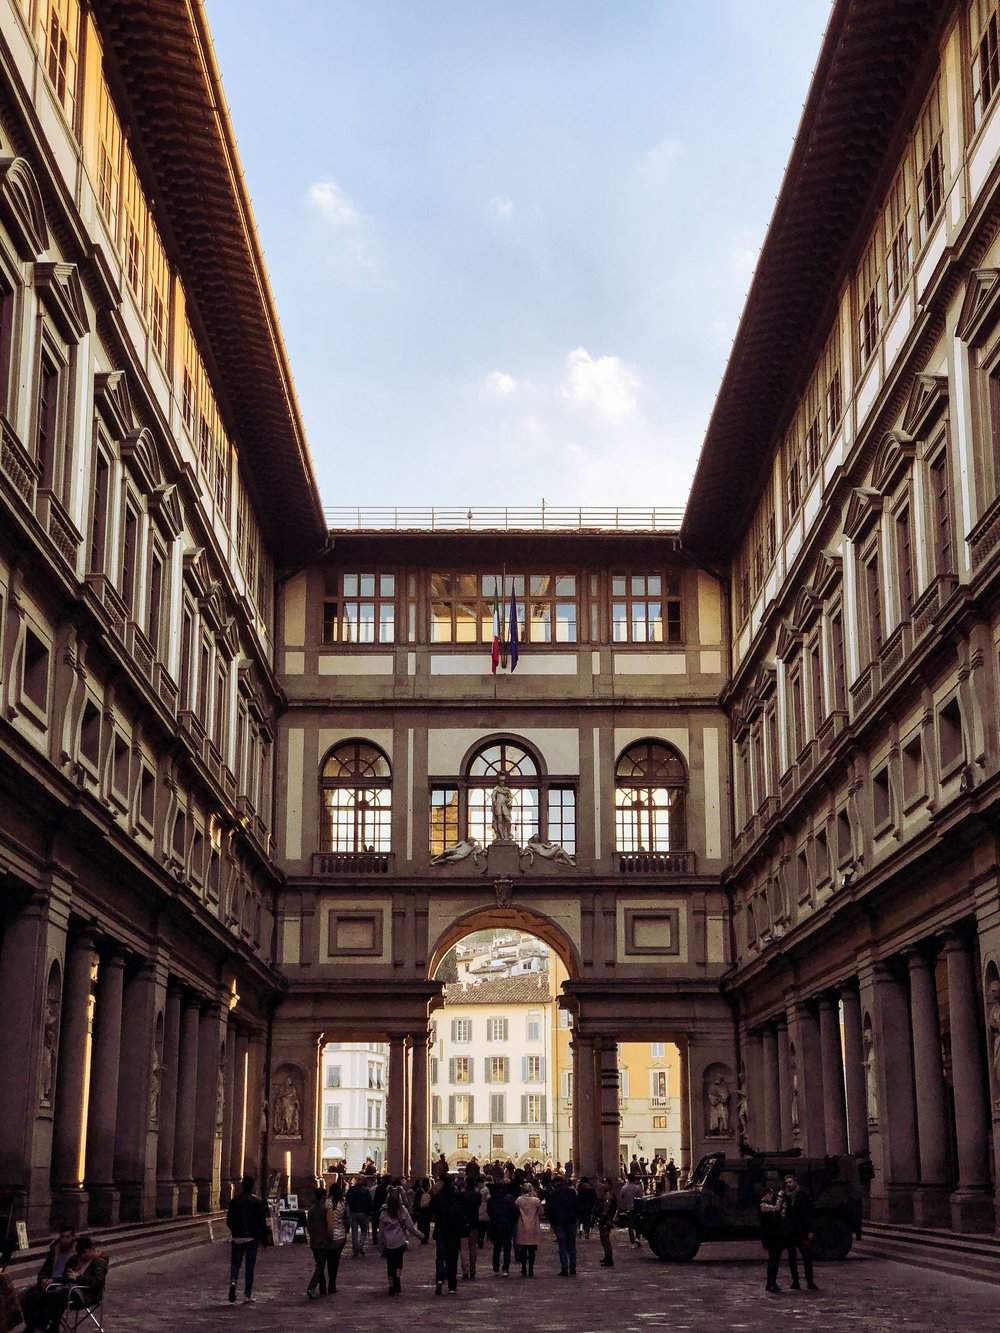 Uffizi with the nifti-fifti.